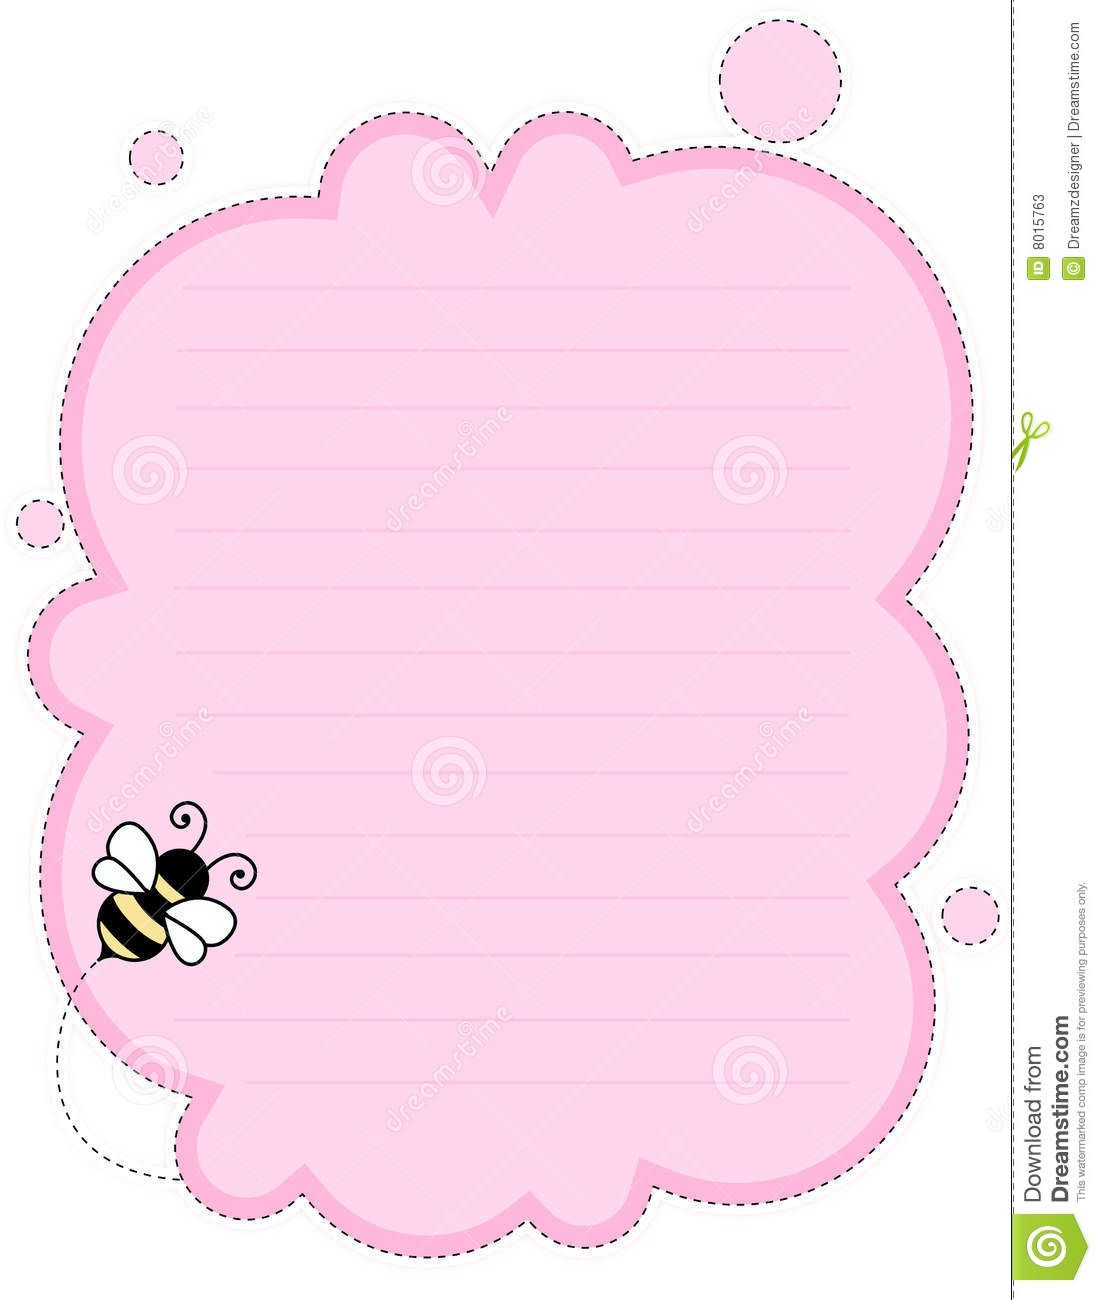 Cute Note Paper Background Download From Over 65 Million High Quality Stock Photos Images Vectors Sign Up For Free Cute Notes Note Paper Paper Background